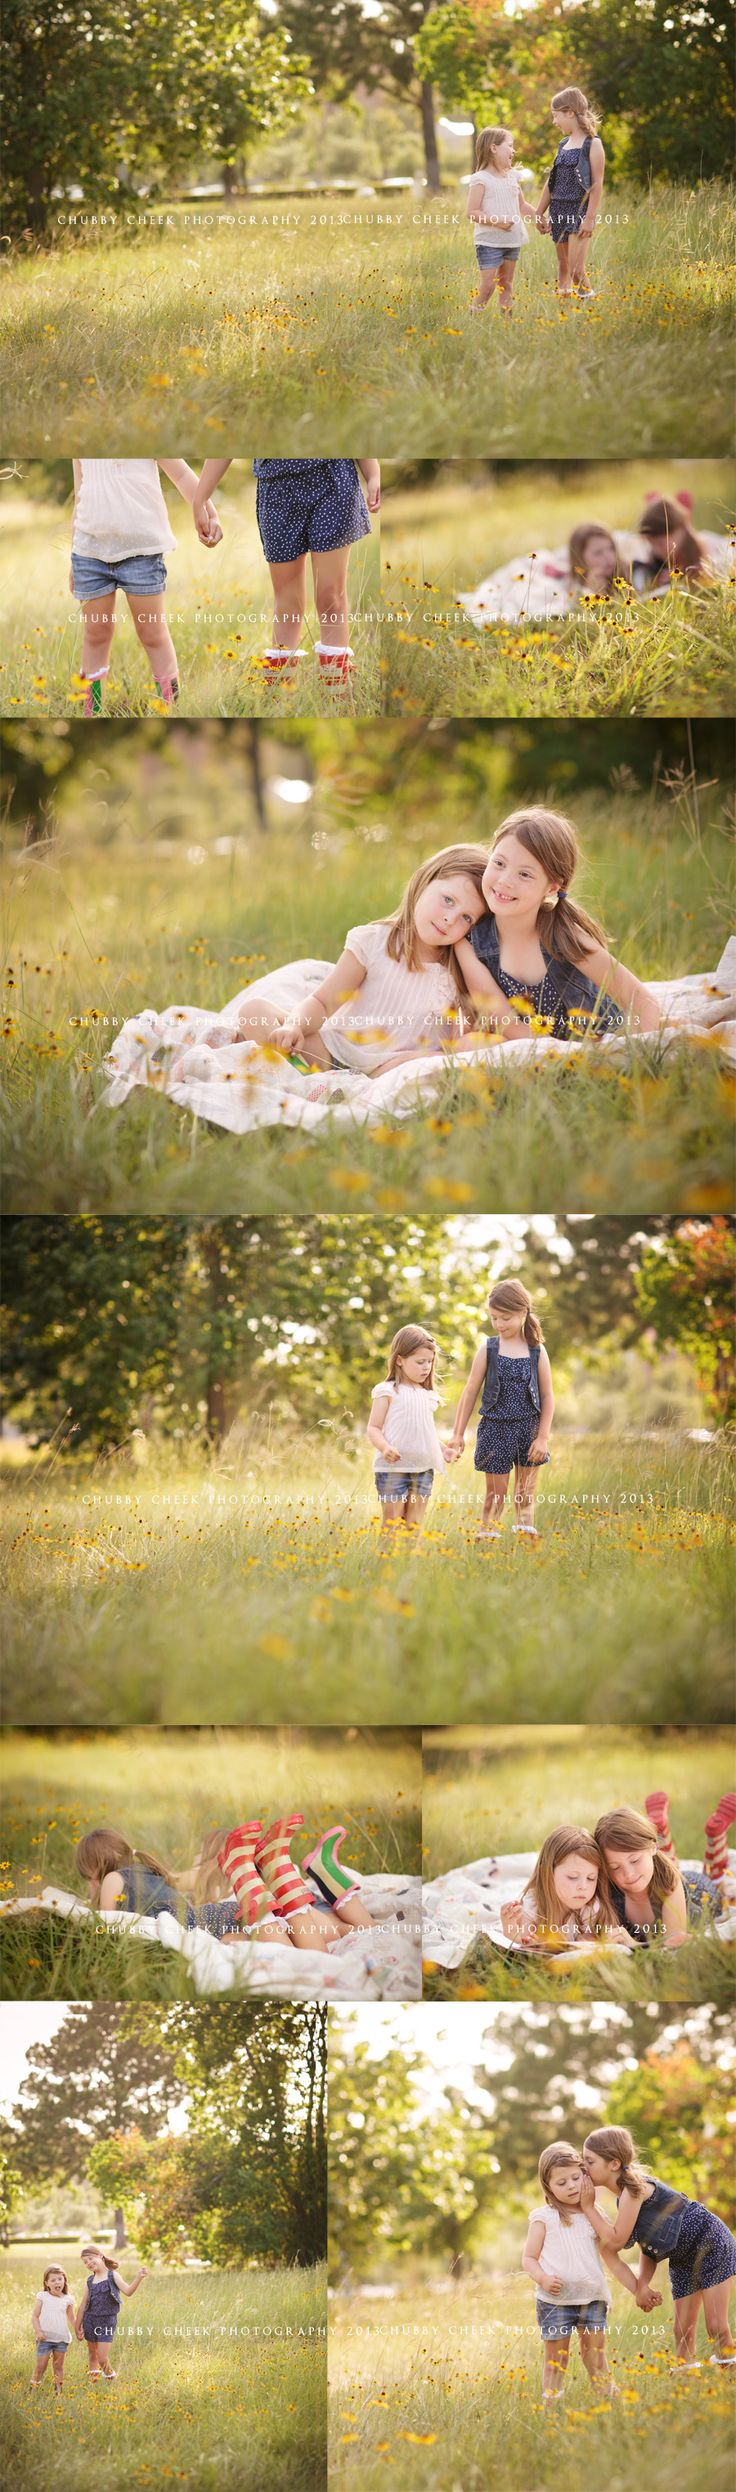 #clickaway #clickinmomsChubby Cheek Photography Houston, TX Natural Light Photographer » Houston Baby, Child, and Family Photographer » page 4